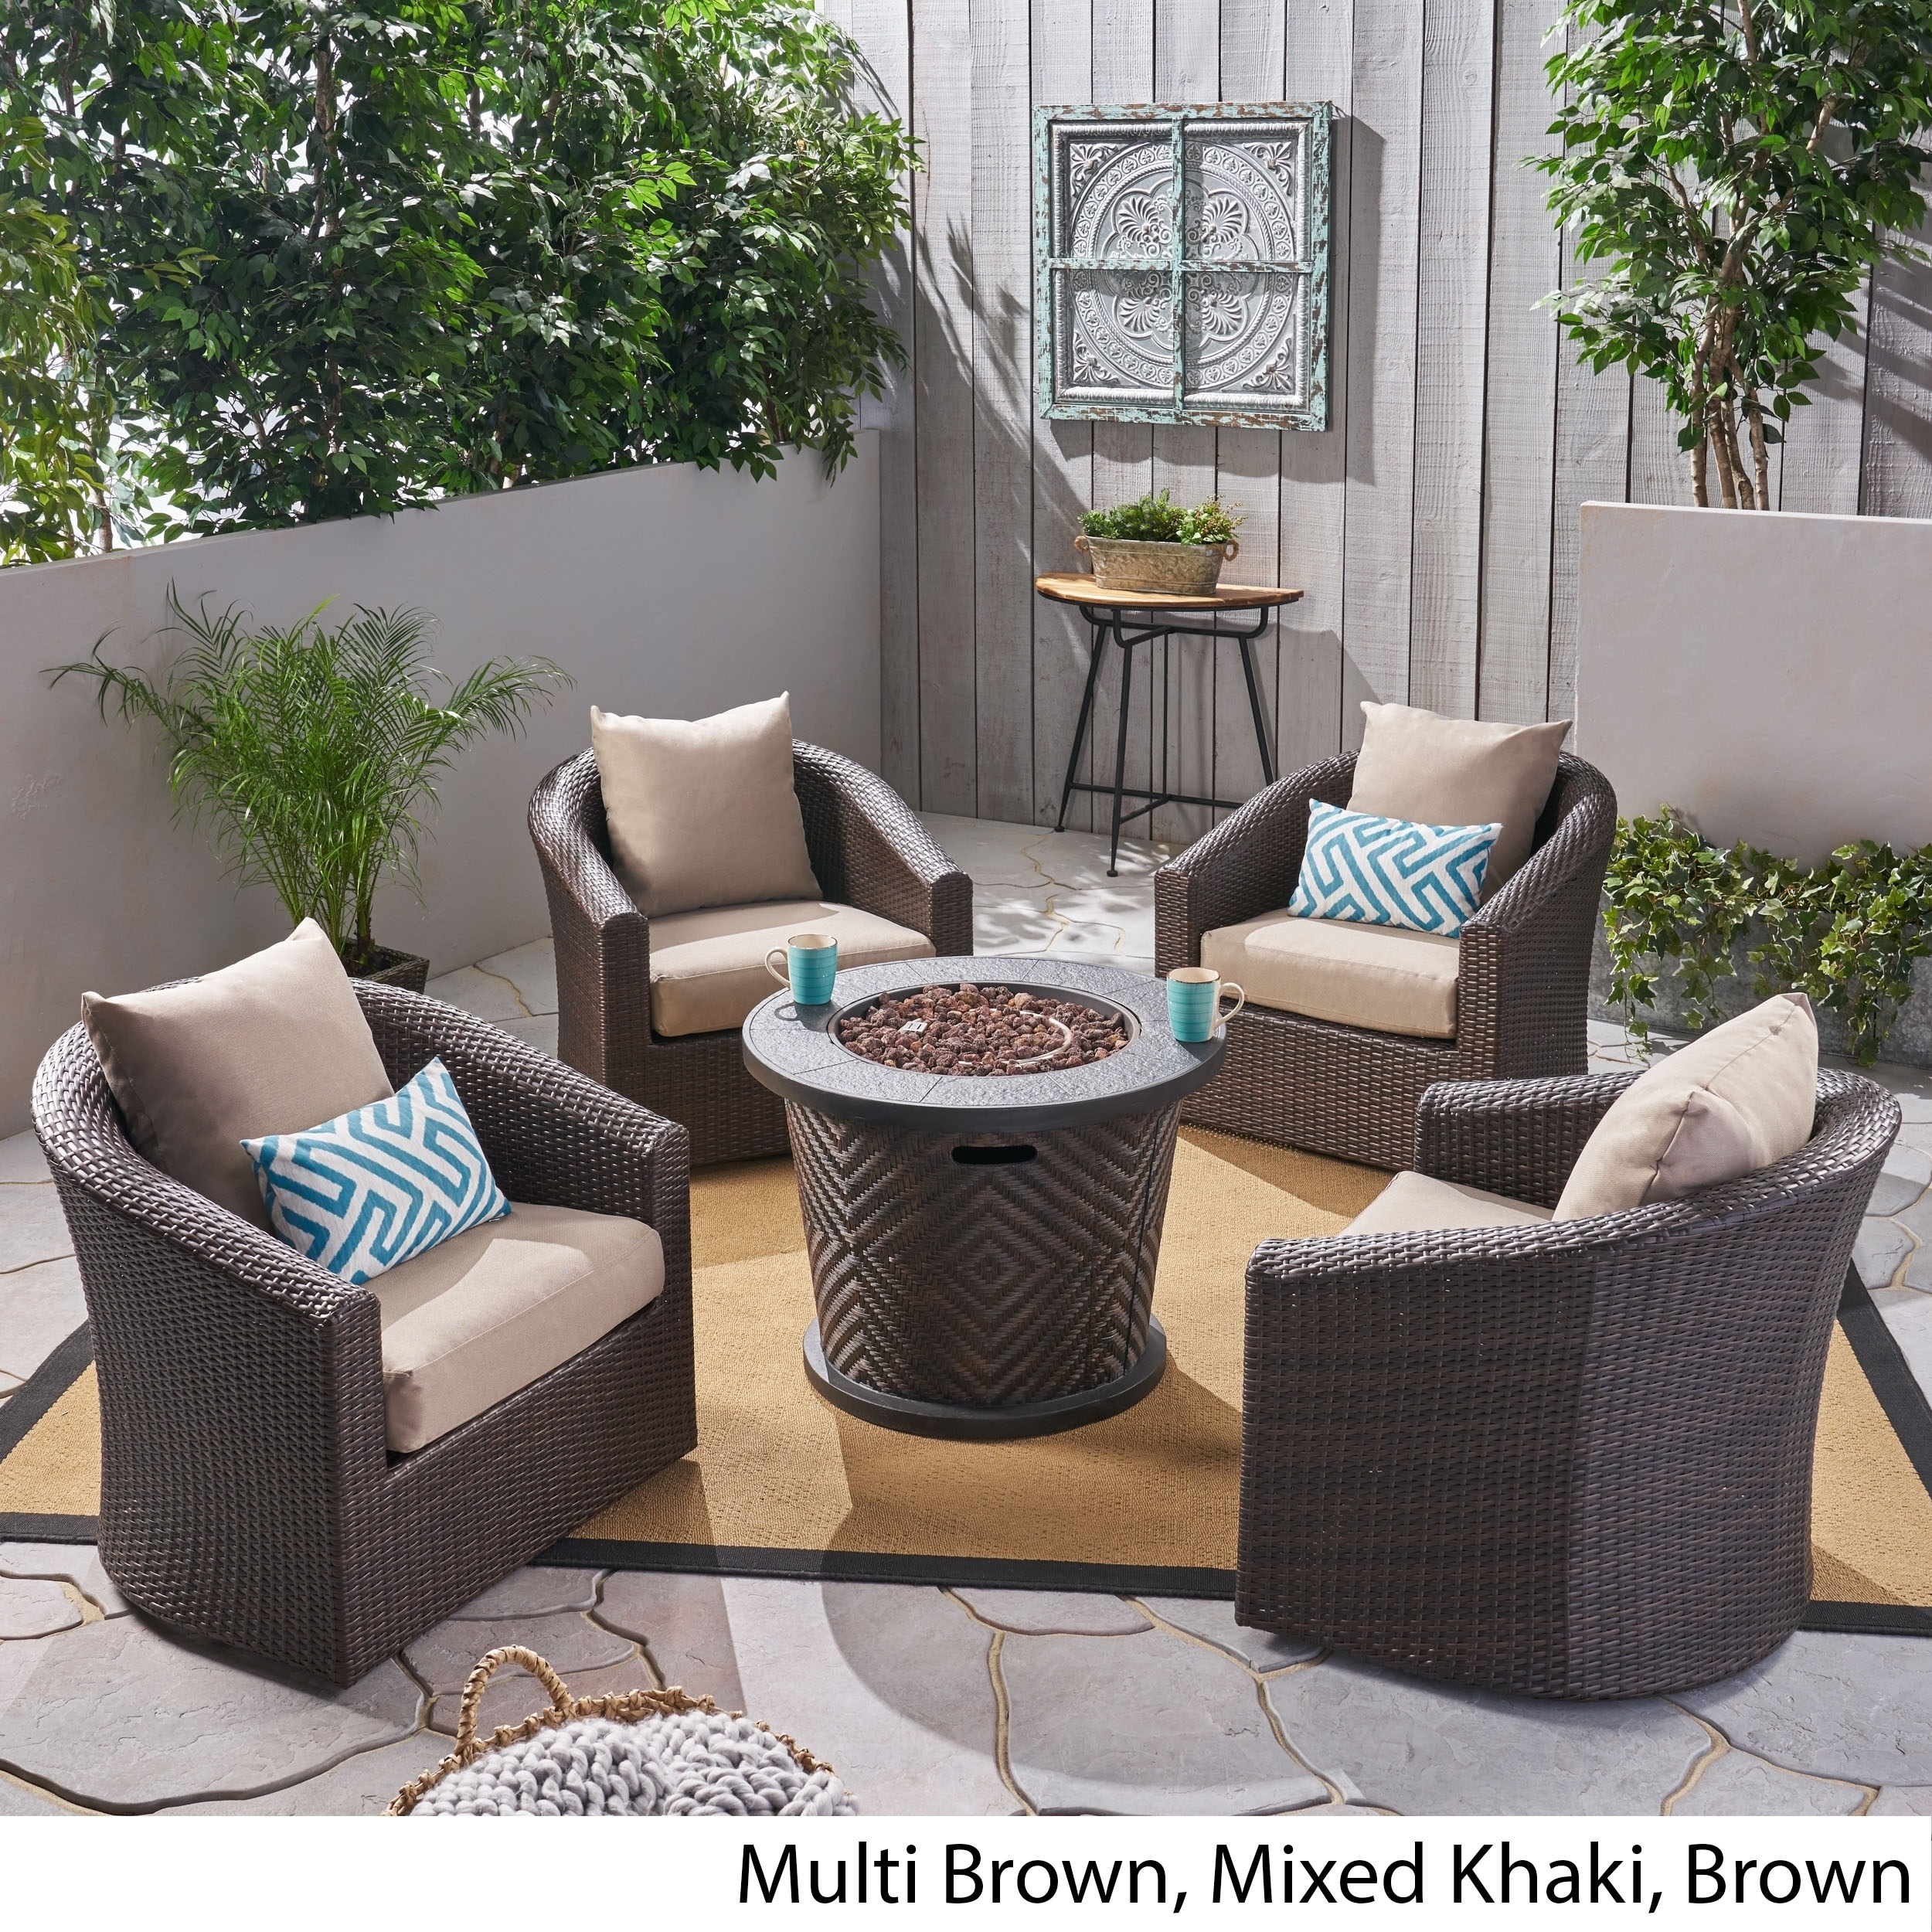 Brilliant Pollock Outdoor 4 Piece Wicker Swivel Chair Set With Fire Pit By Christopher Knight Home Evergreenethics Interior Chair Design Evergreenethicsorg